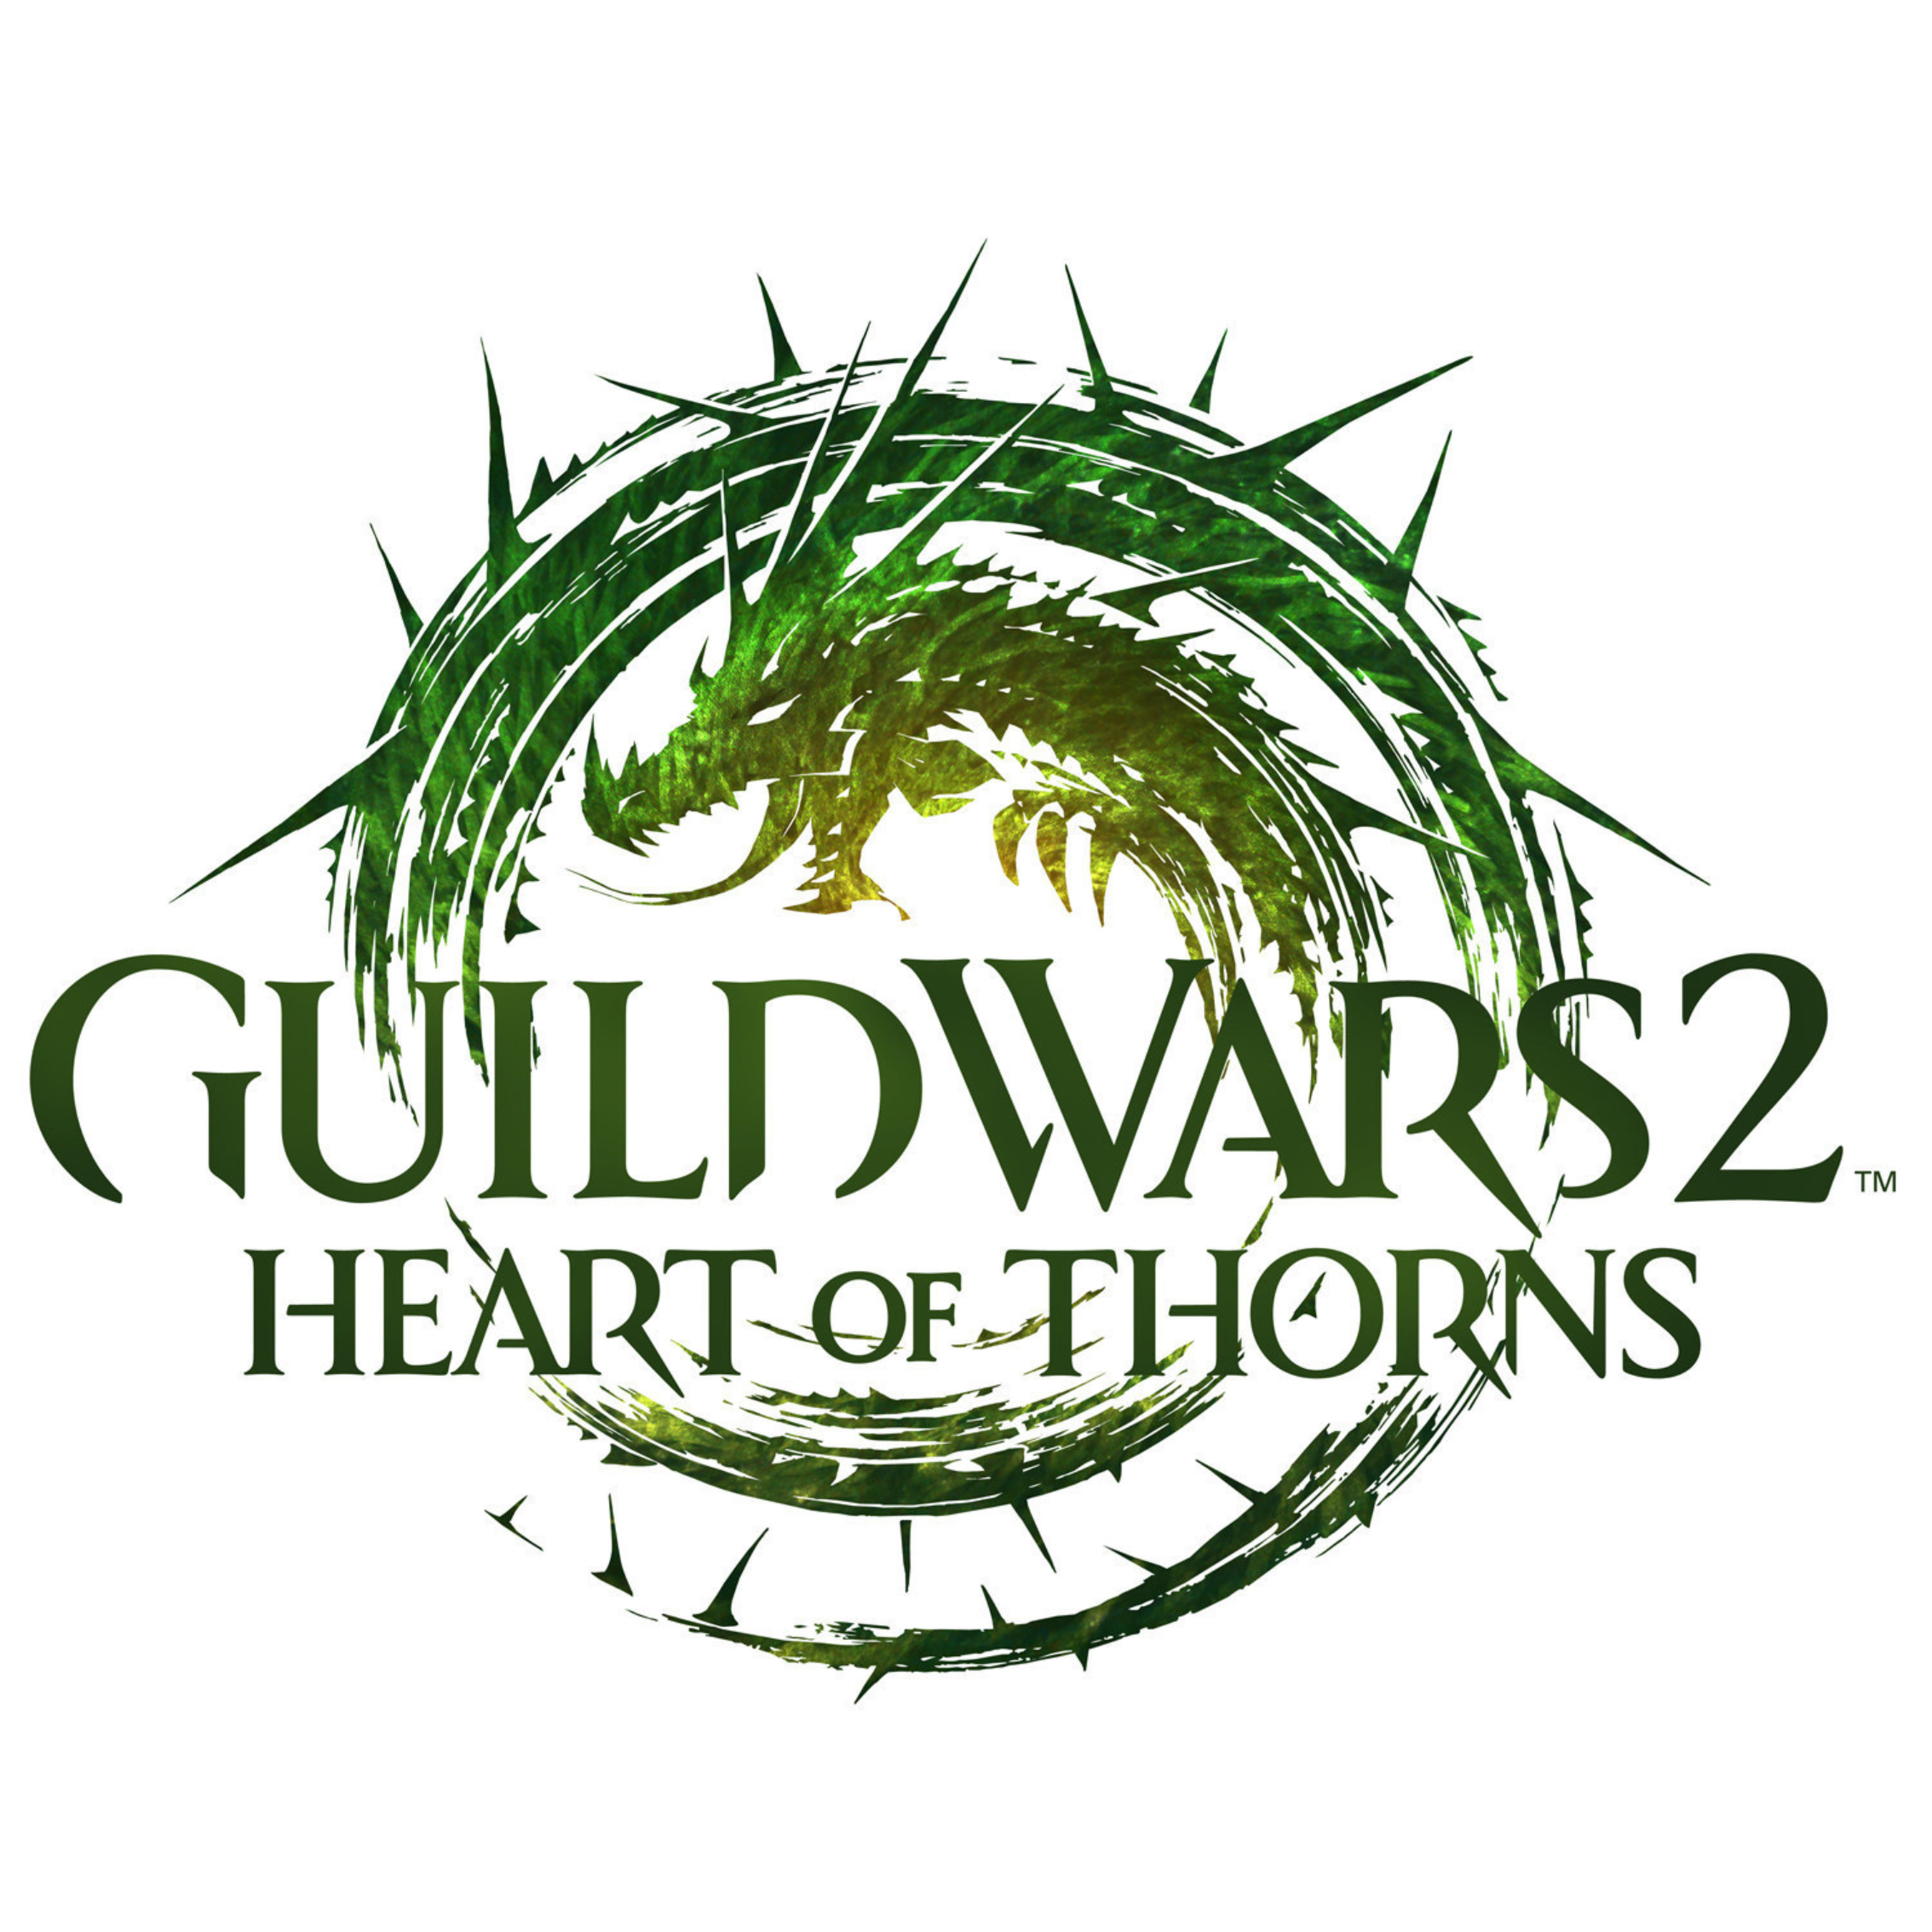 ArenaNet Announces 7 Million Guild Wars 2' Accounts, Launches new expansion Guild Wars 2: Heart of Thorns